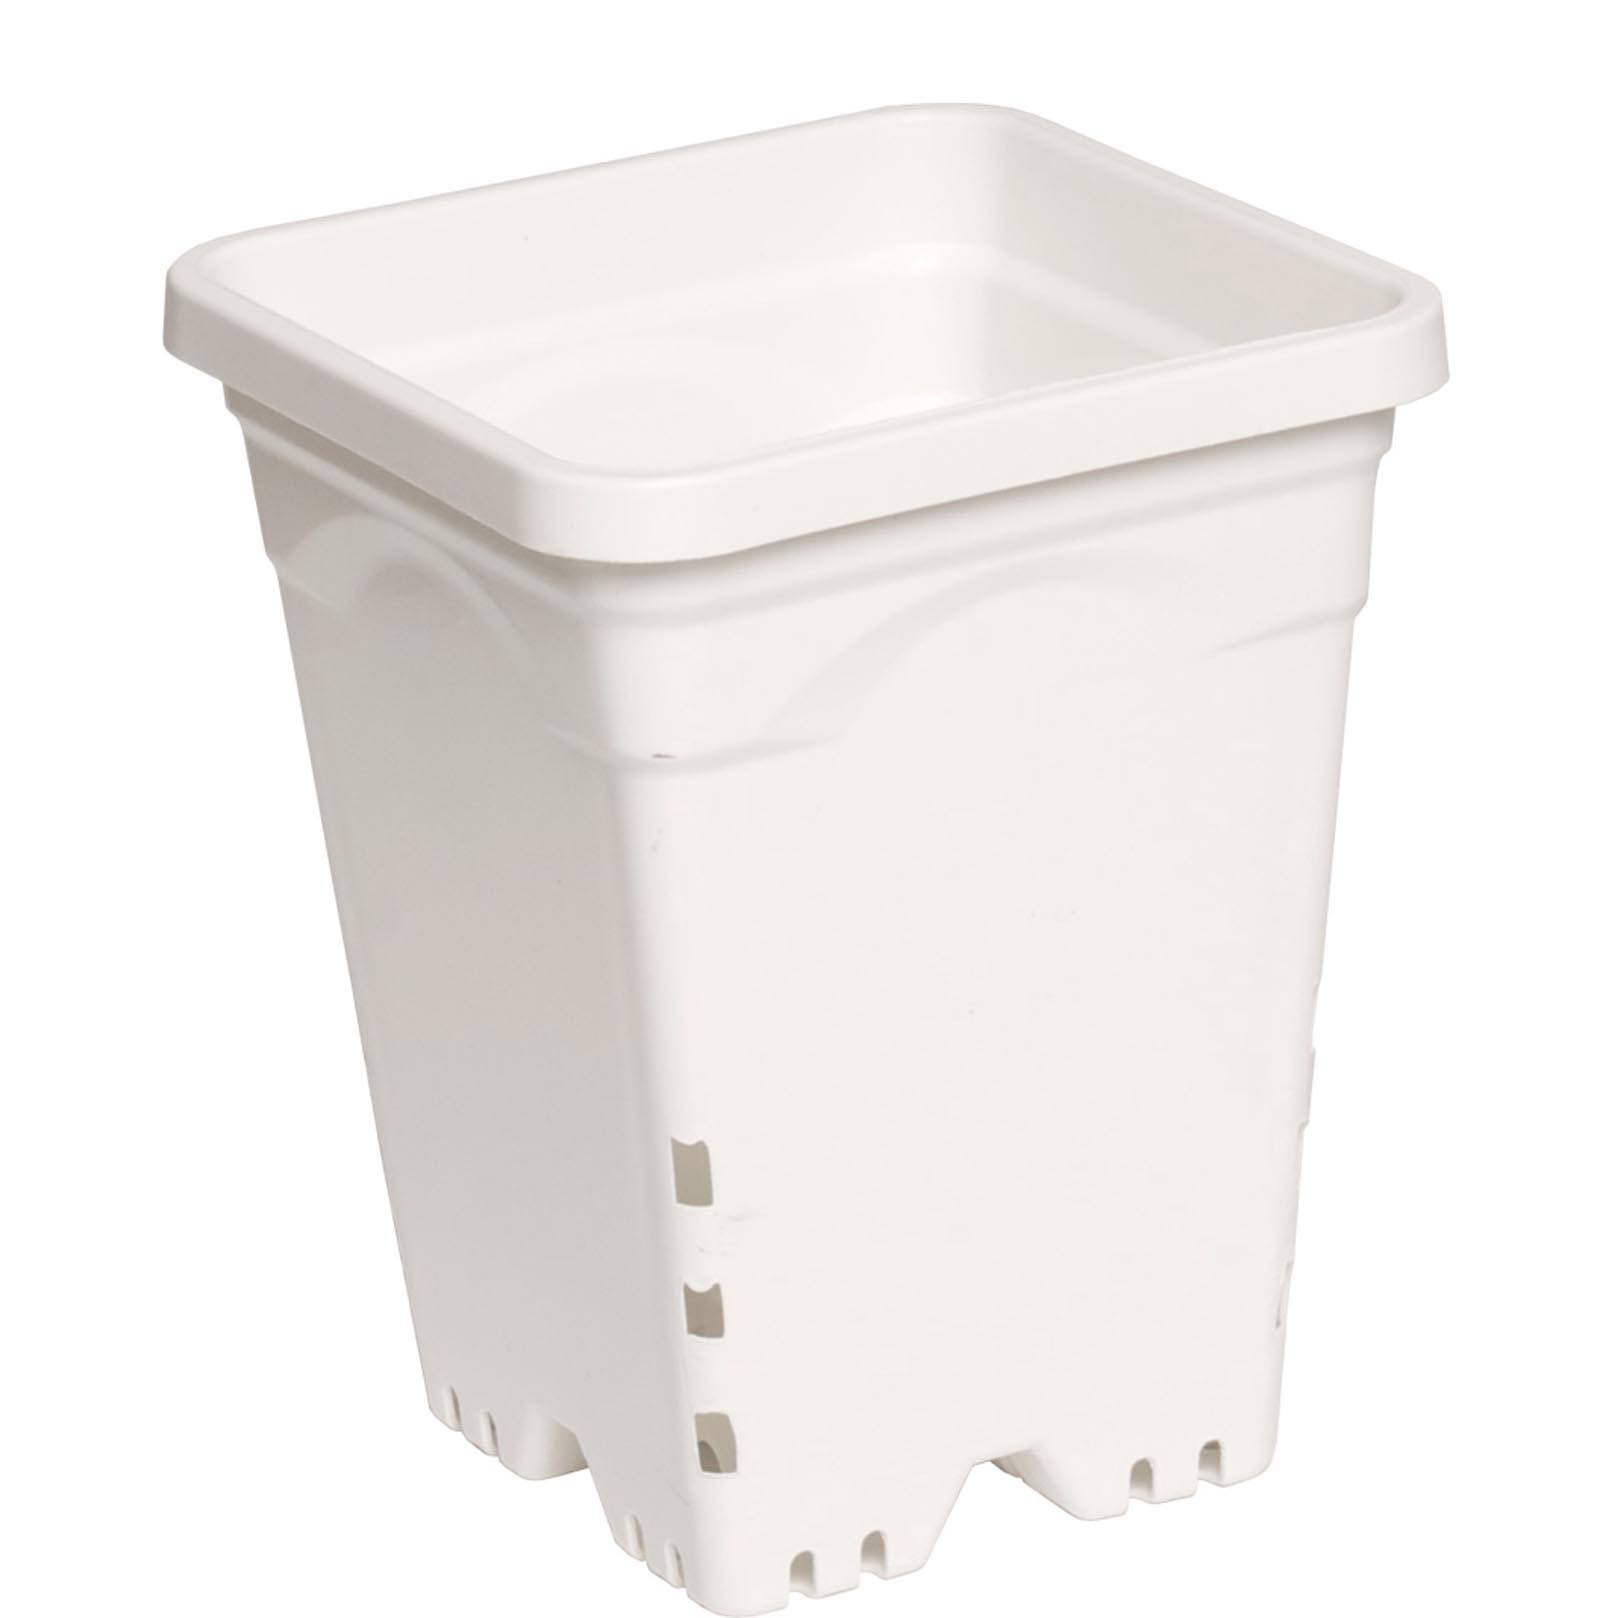 Hydrofarm Square Heavy Duty Pot - White, 4l